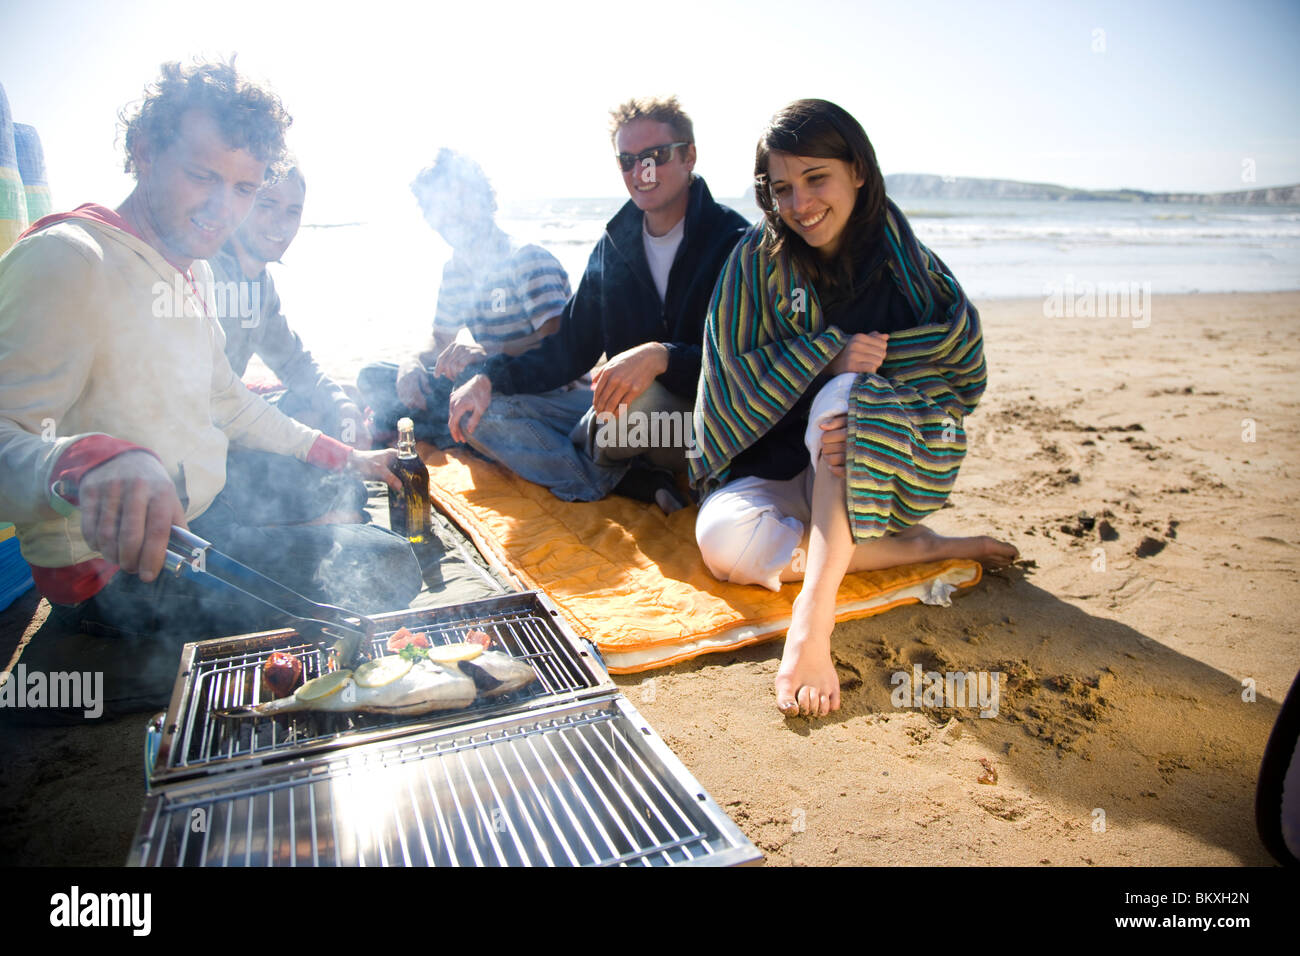 Group of friends sitting around a barbeque on the beach Stock Photo